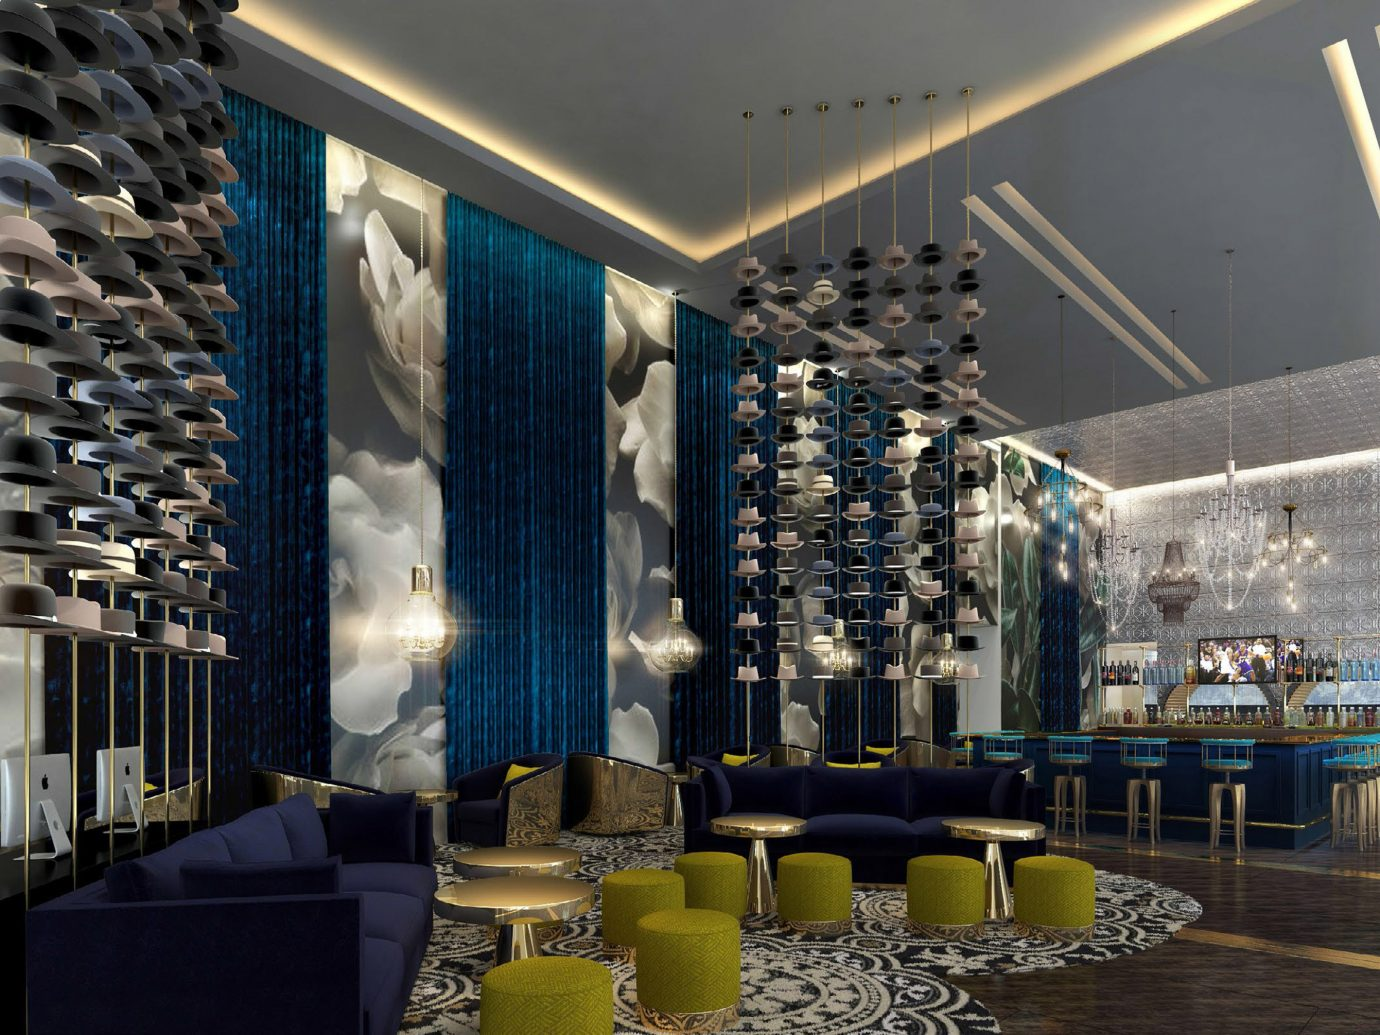 Hotels indoor ceiling Lobby room interior design convention center function hall restaurant Boutique Design retail meal furniture